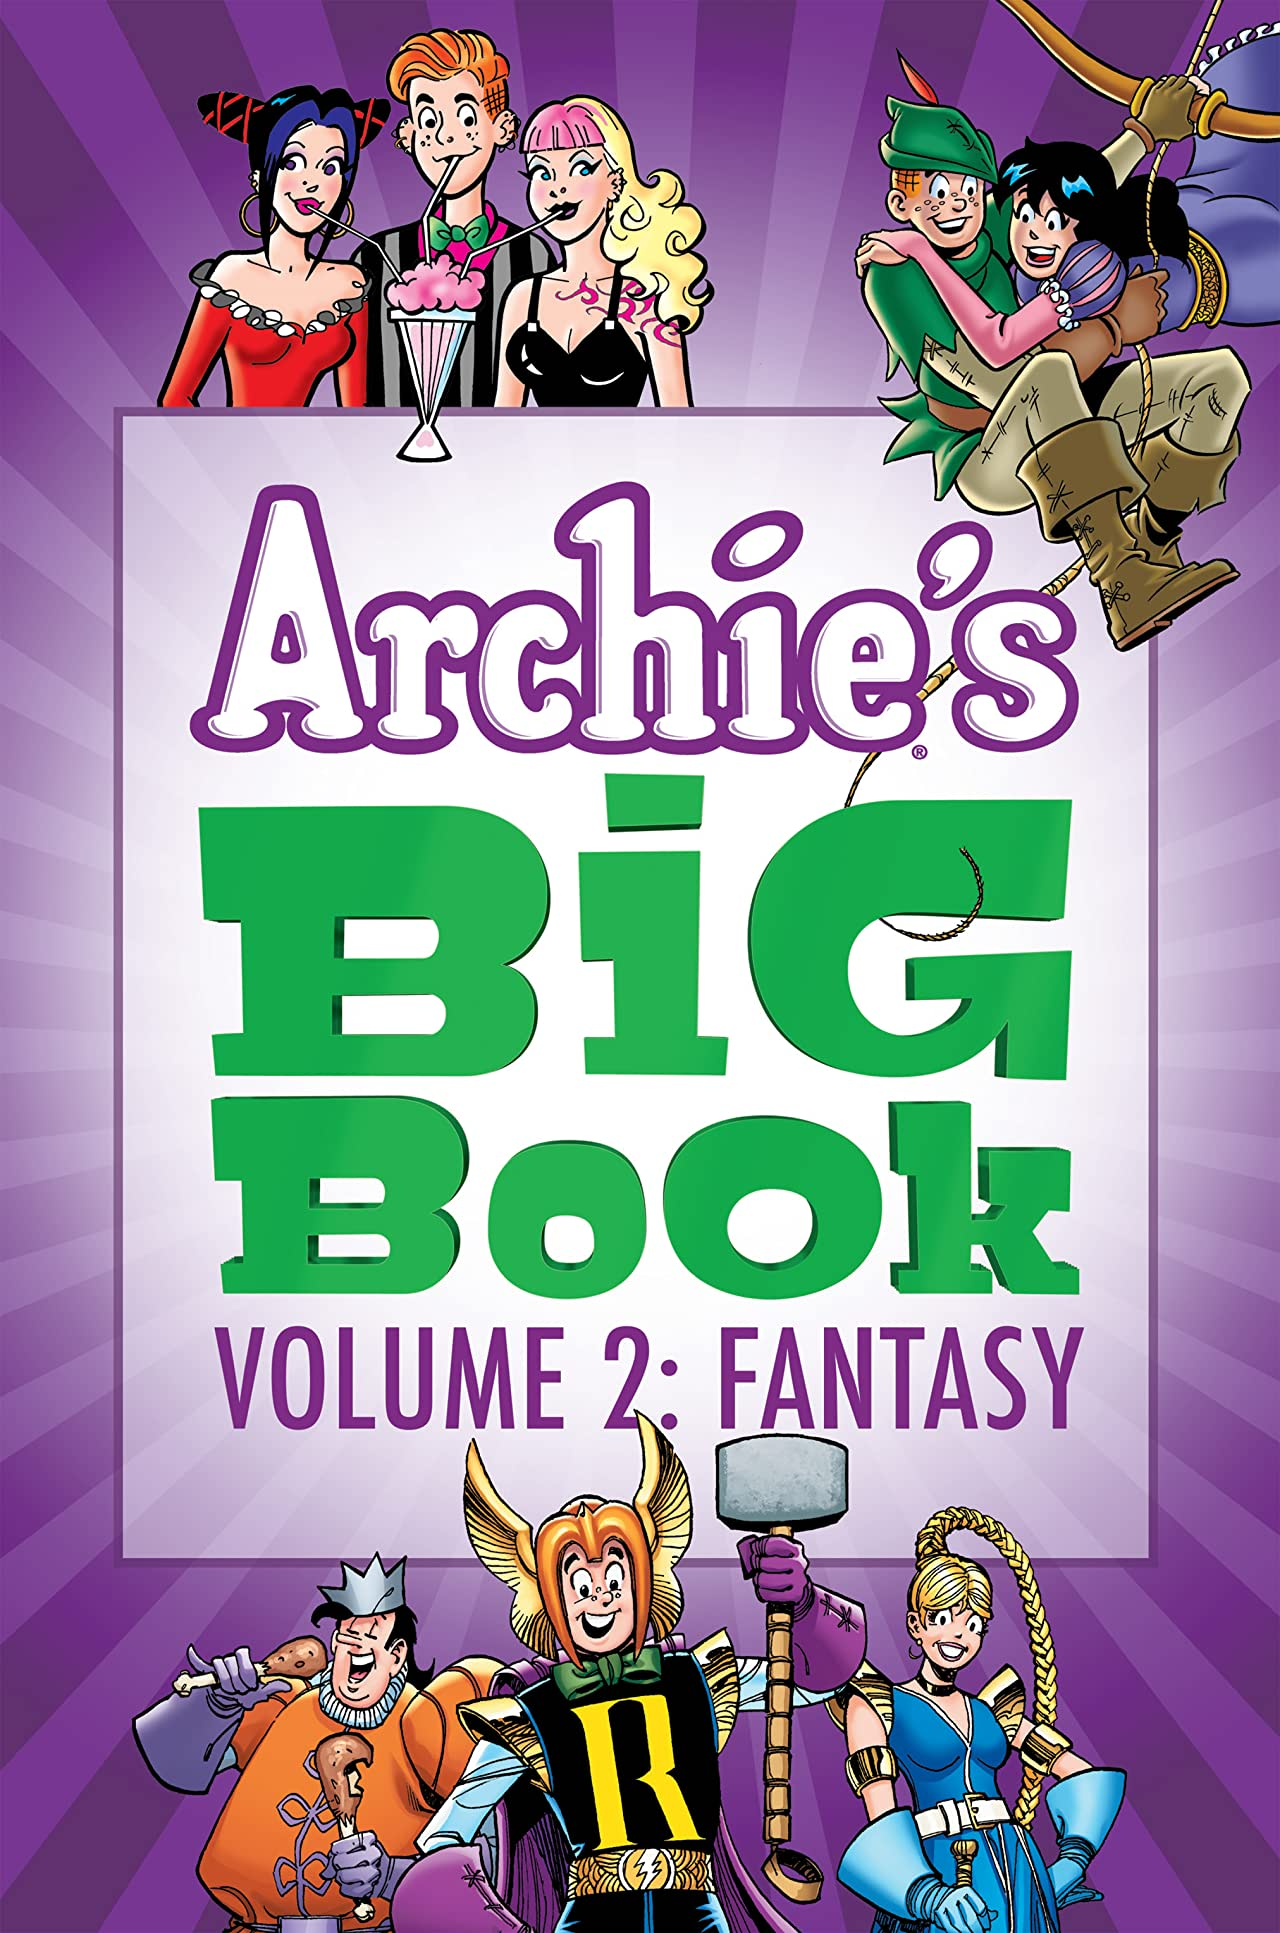 Archie's Big Book Vol. 2: Fantasy